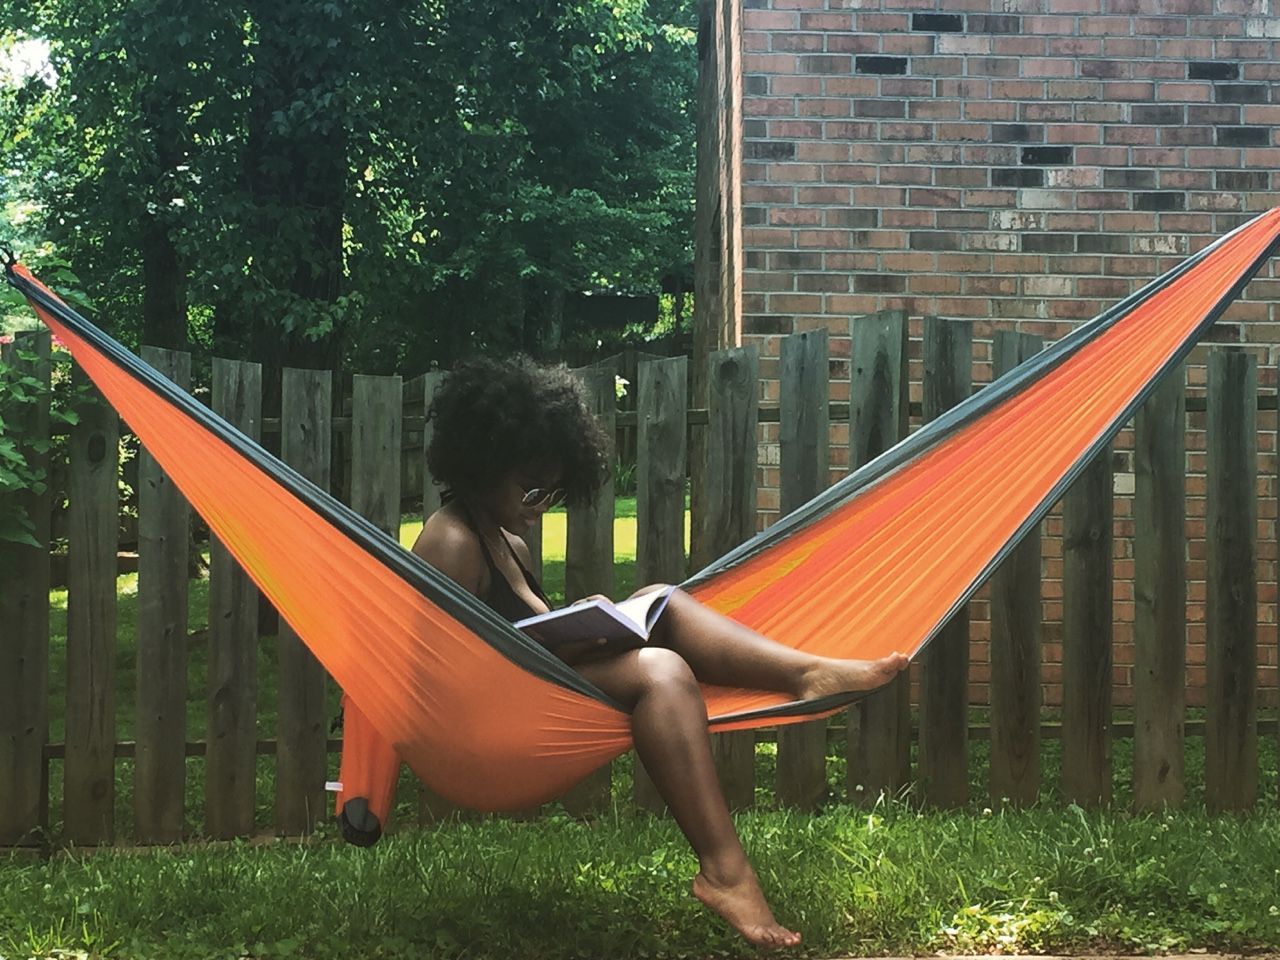 A Good Book Comfortable Hammock And Nice Day I Feel You